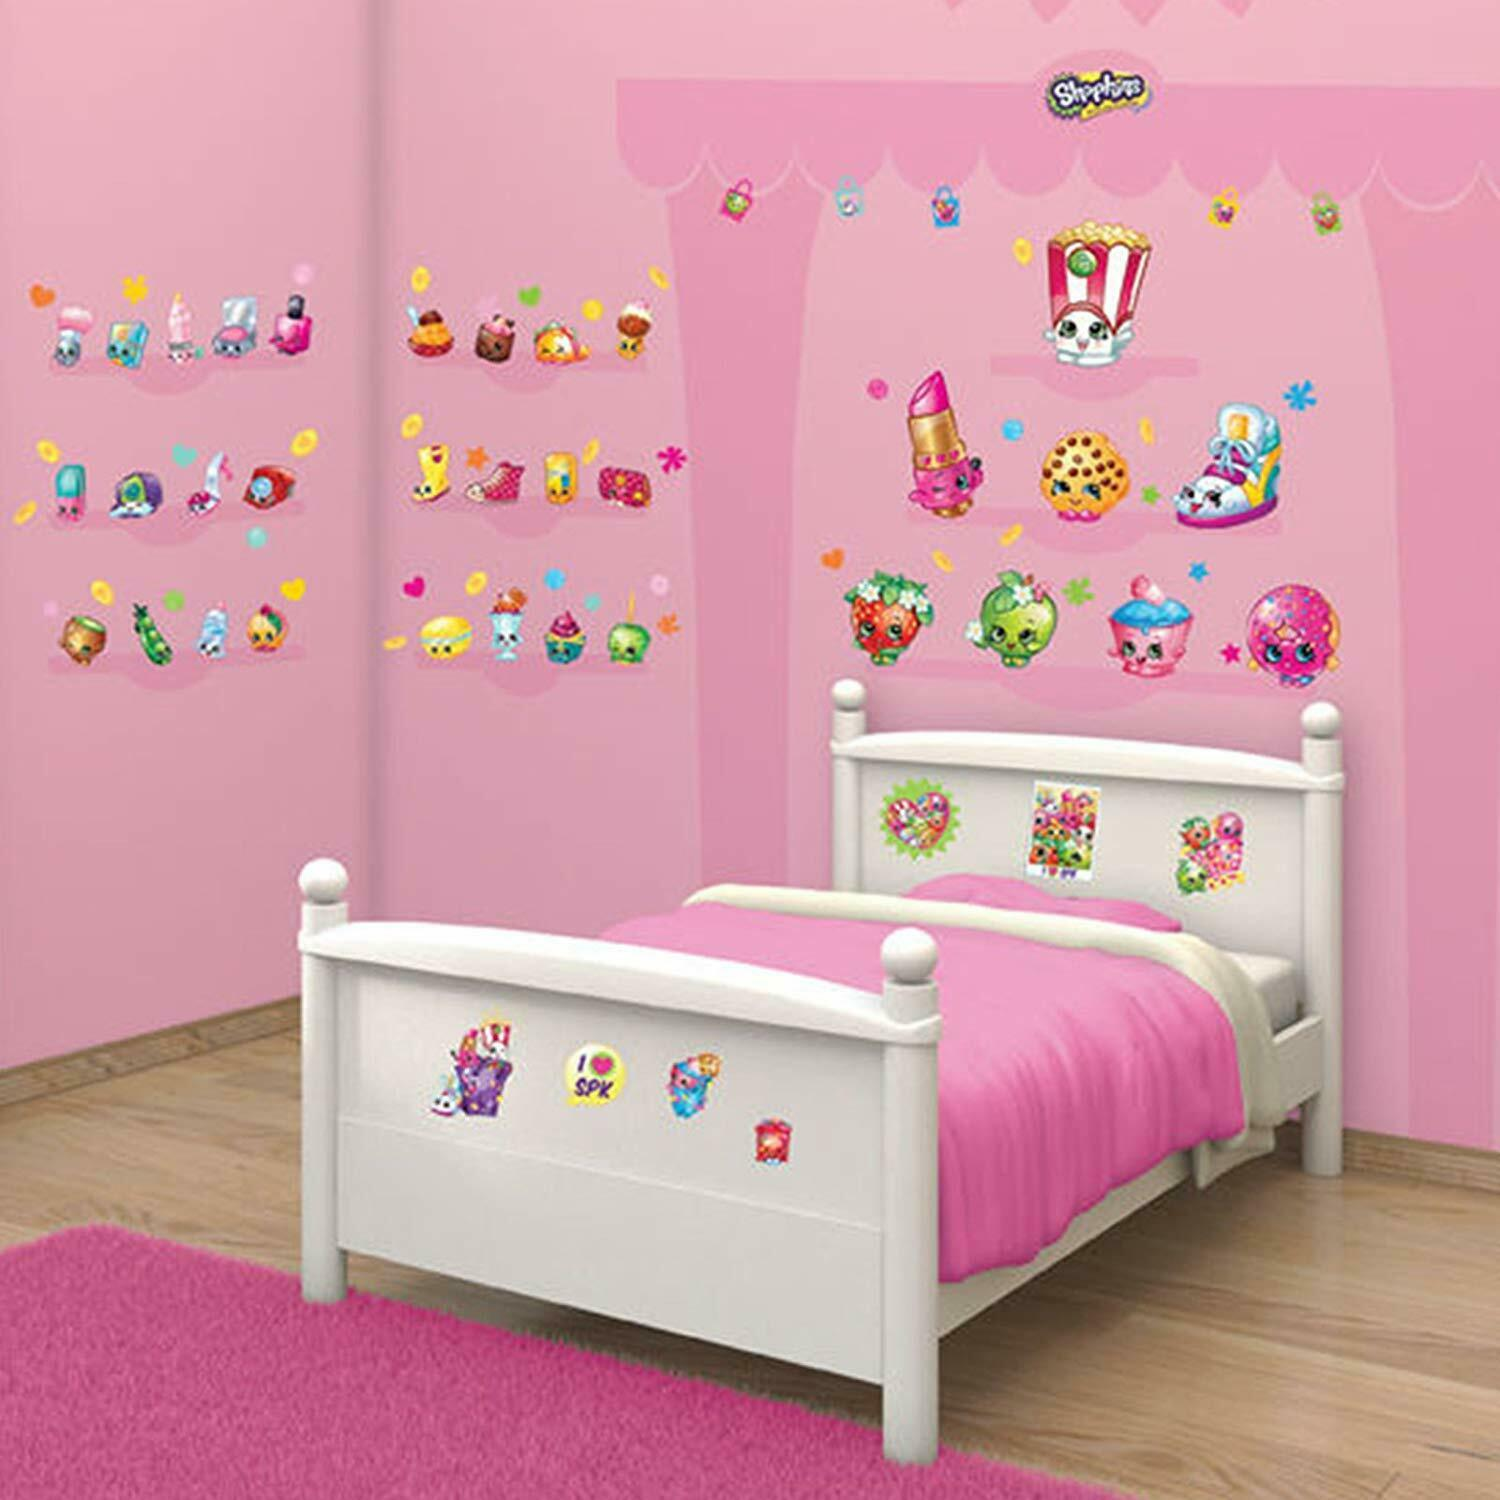 Details About Walltastic Kins Children S Room Décor Kit 86 Repositionable Wall Stickers